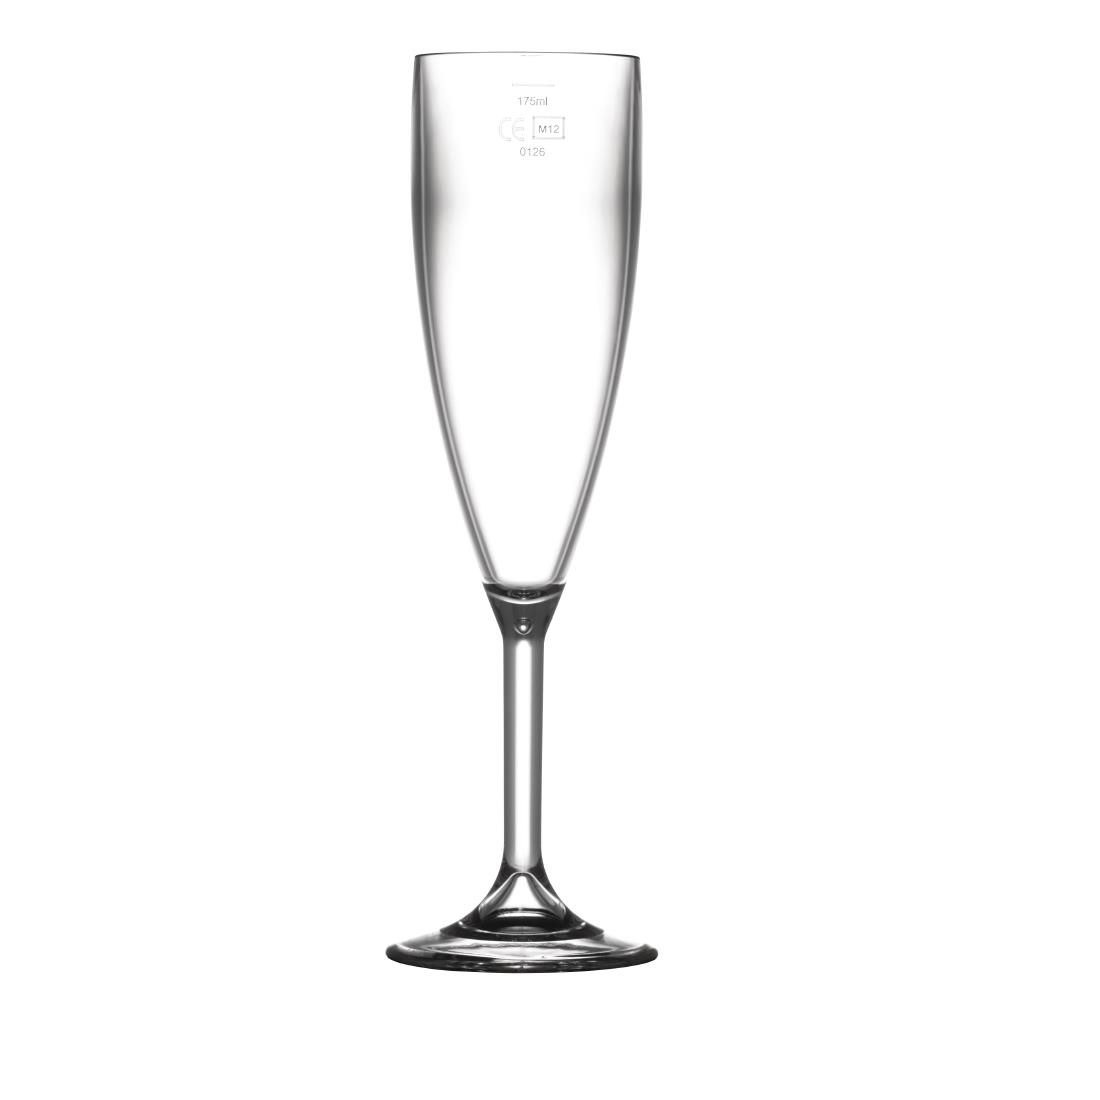 Image of BBP Polycarbonate Champagne Flutes 200ml CE Marked at 175ml (Pack of 12) Pack of 12